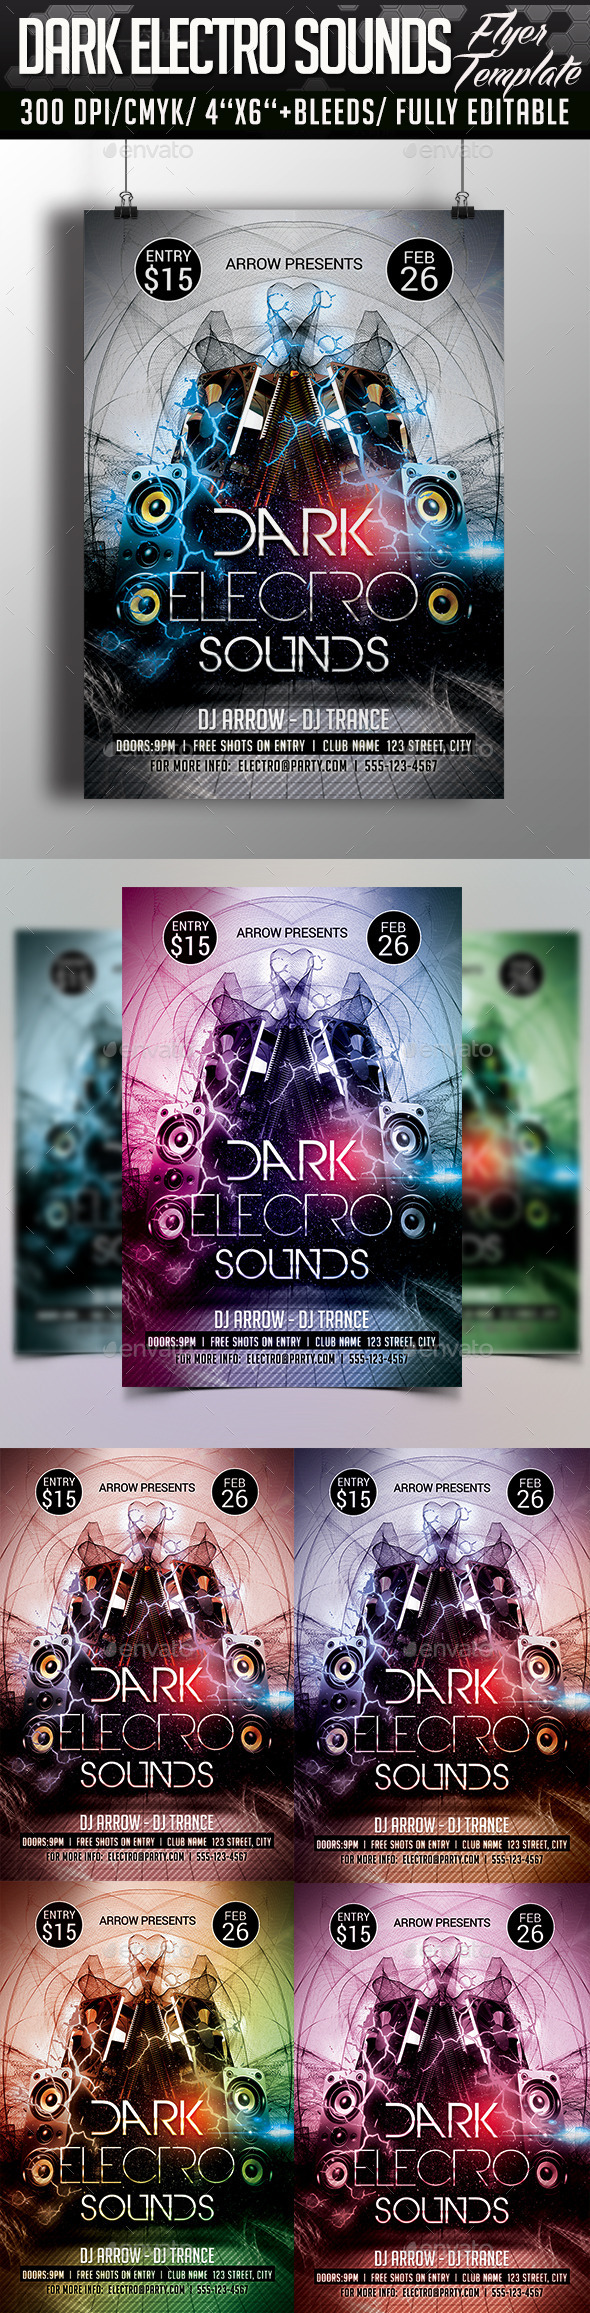 GraphicRiver Dark Electro Sounds Flyer Template 10320194